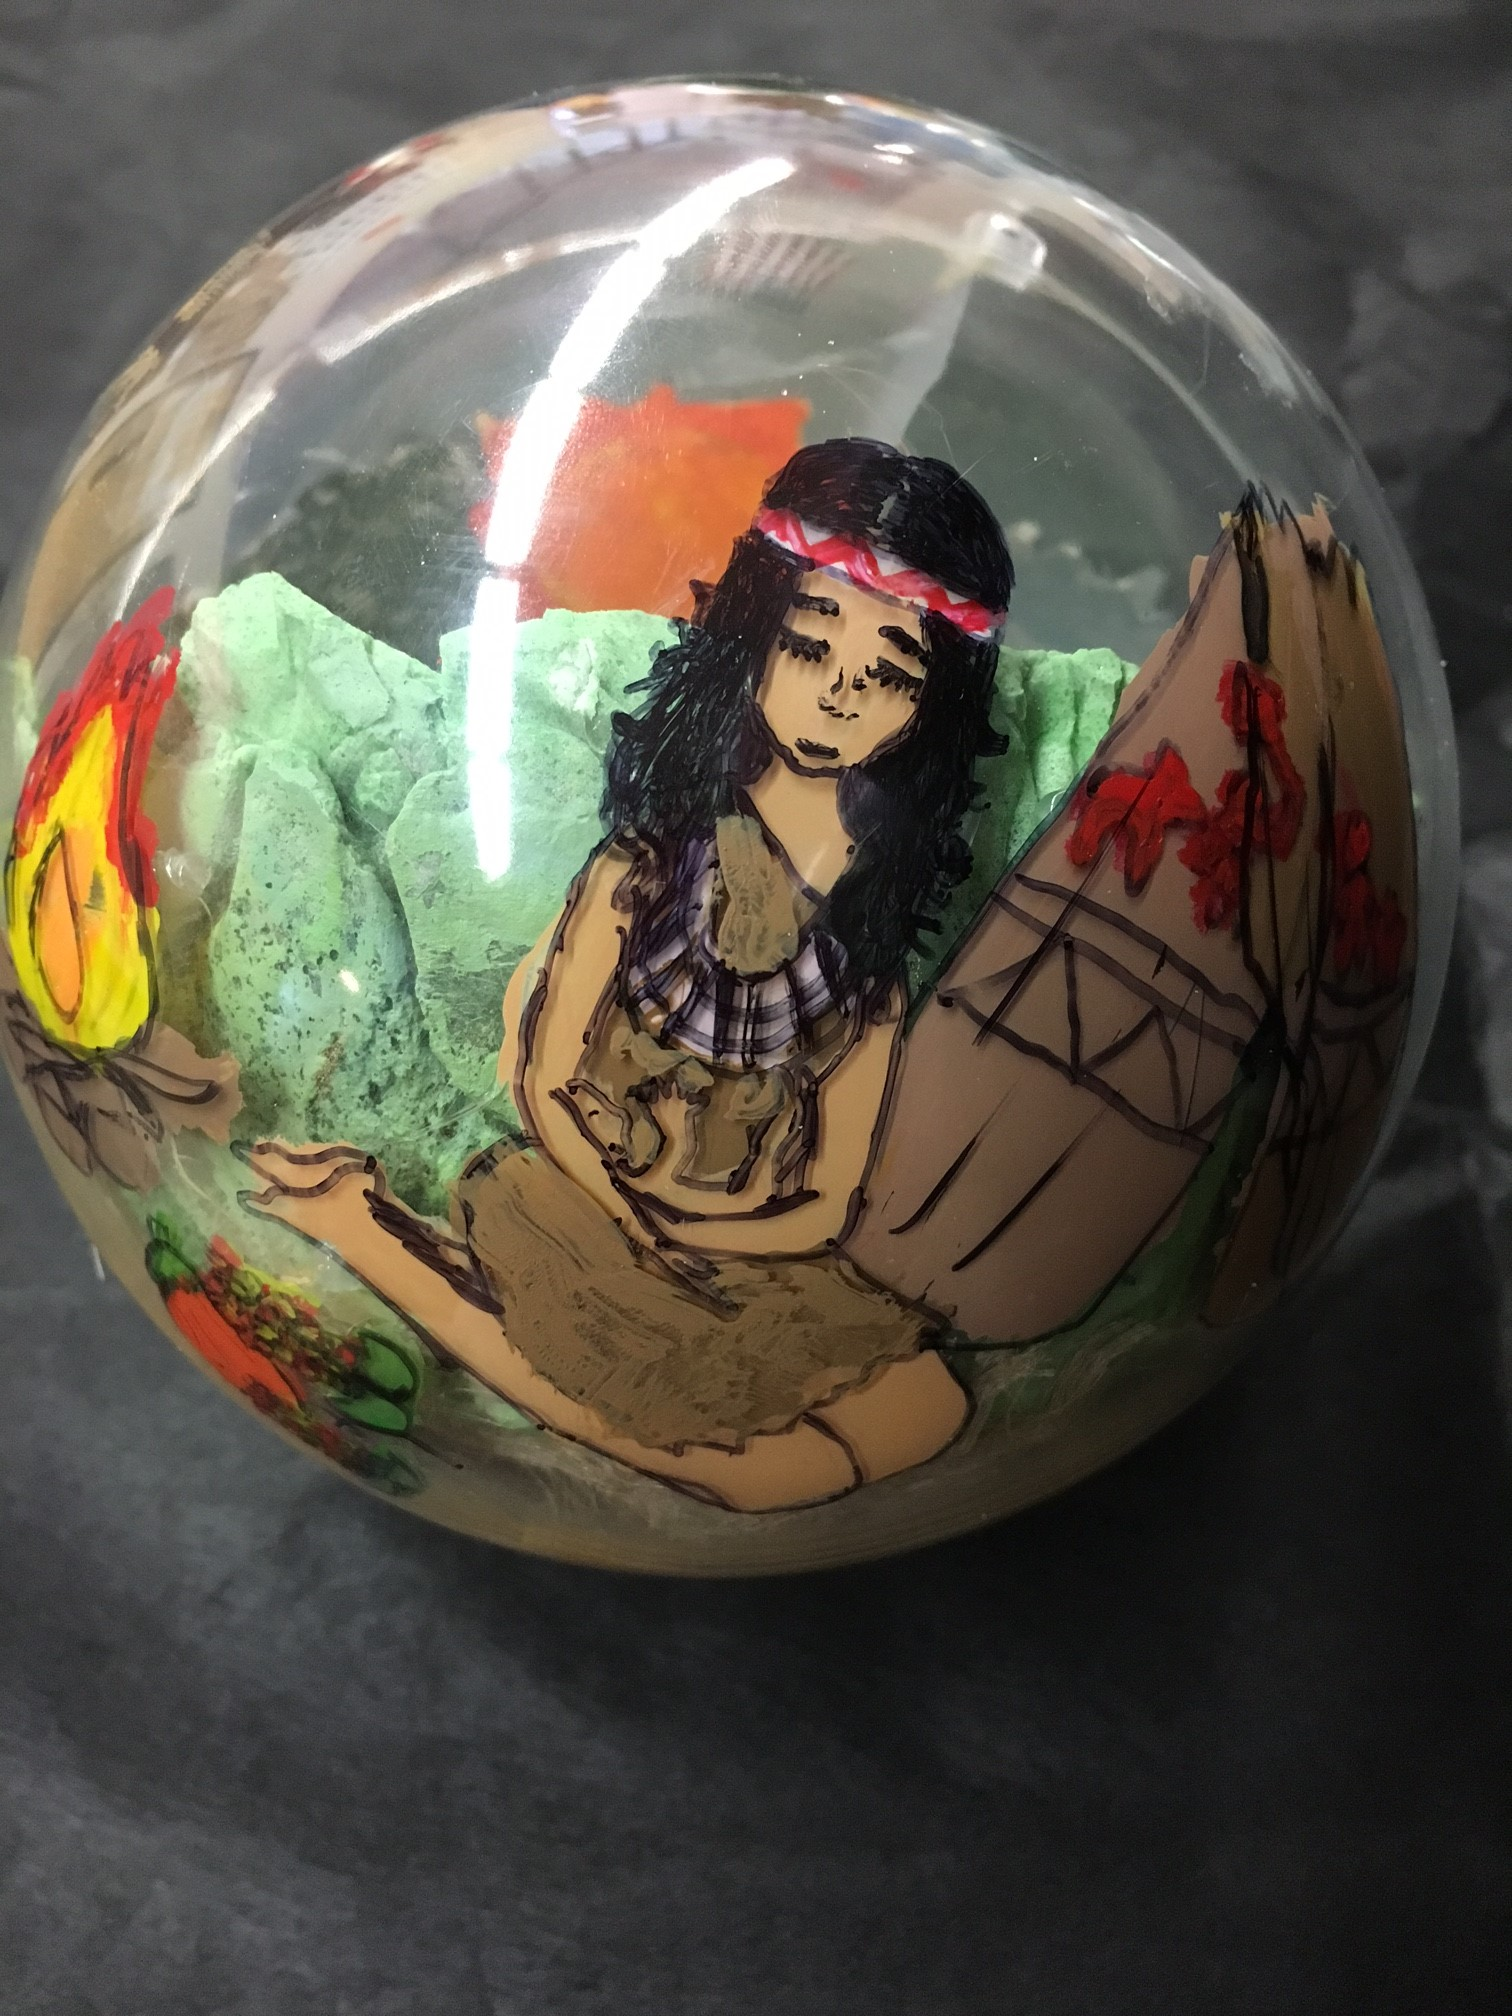 Glass globe ornament with American Indian woman figure